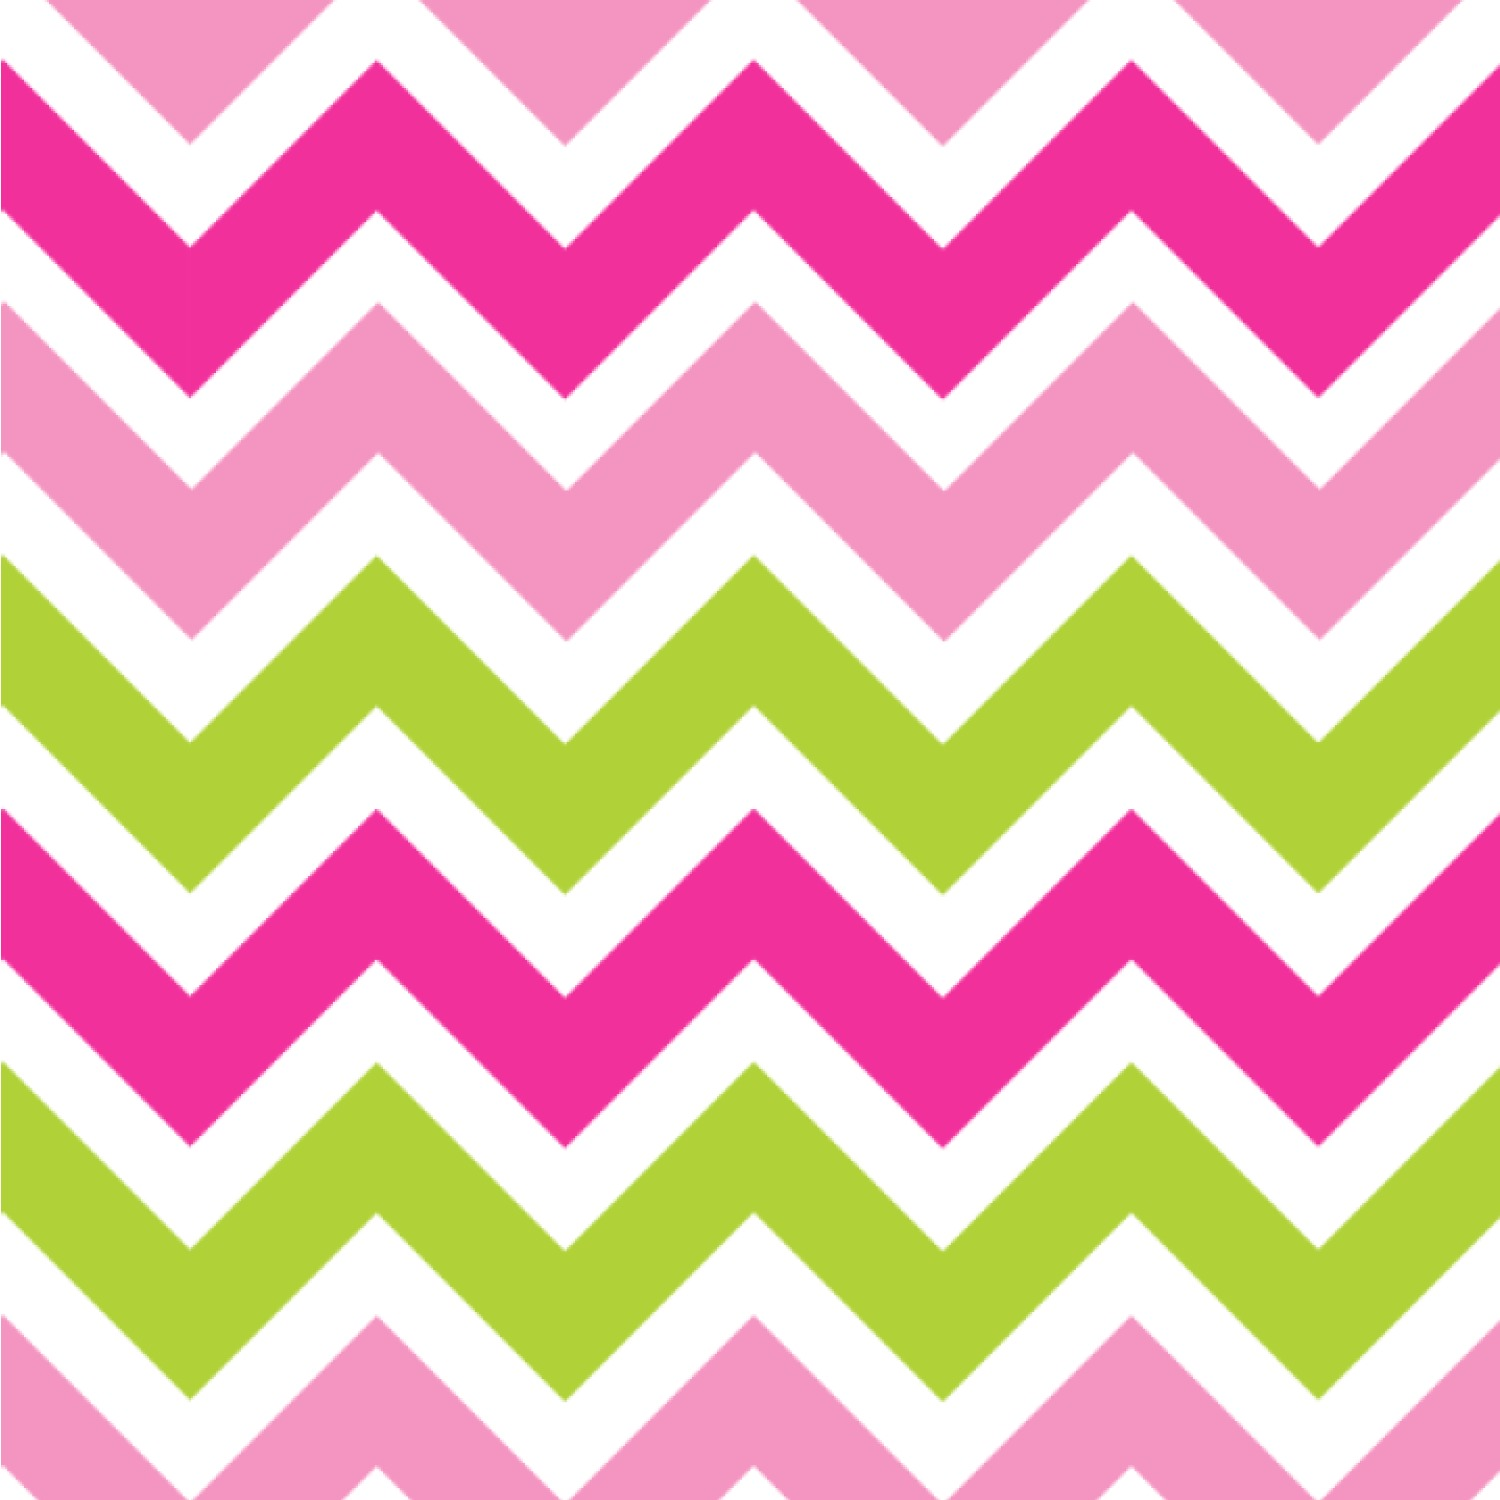 Pink Amp Green Chevron Wallpaper Amp Surface Covering